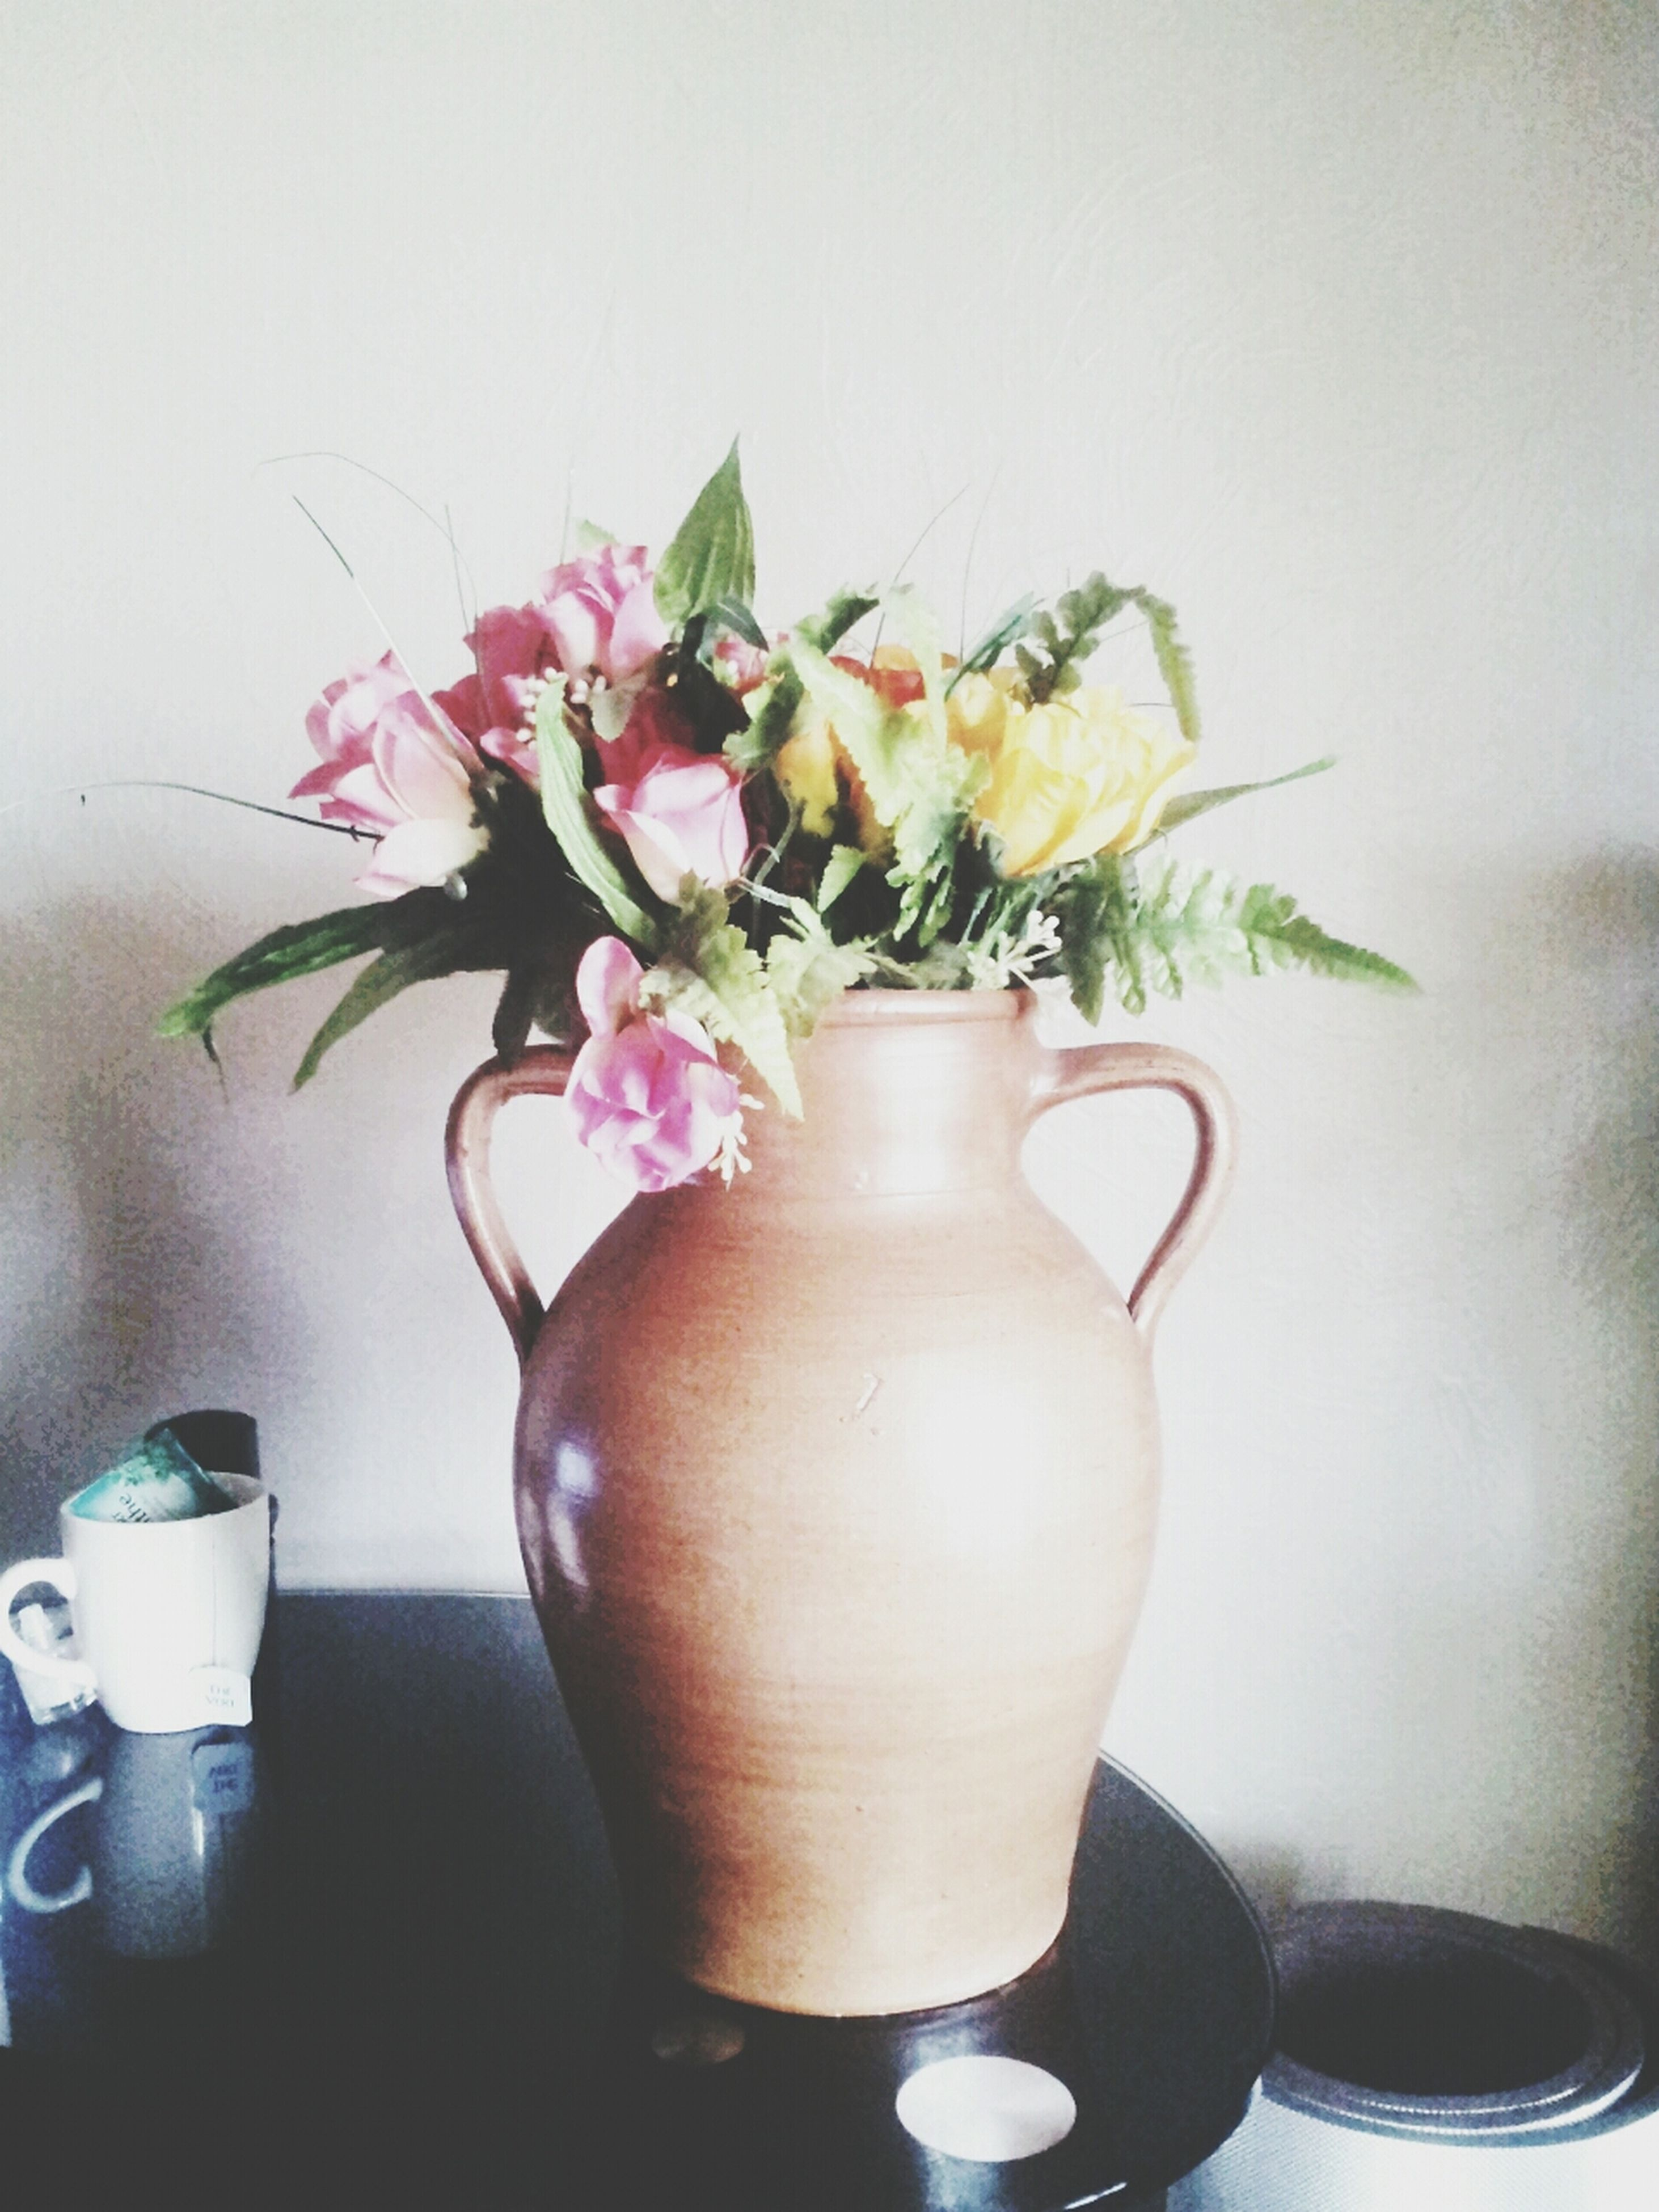 flower, indoors, vase, freshness, table, fragility, potted plant, petal, decoration, flower arrangement, flower head, home interior, plant, close-up, bunch of flowers, still life, wall - building feature, flower pot, bouquet, growth